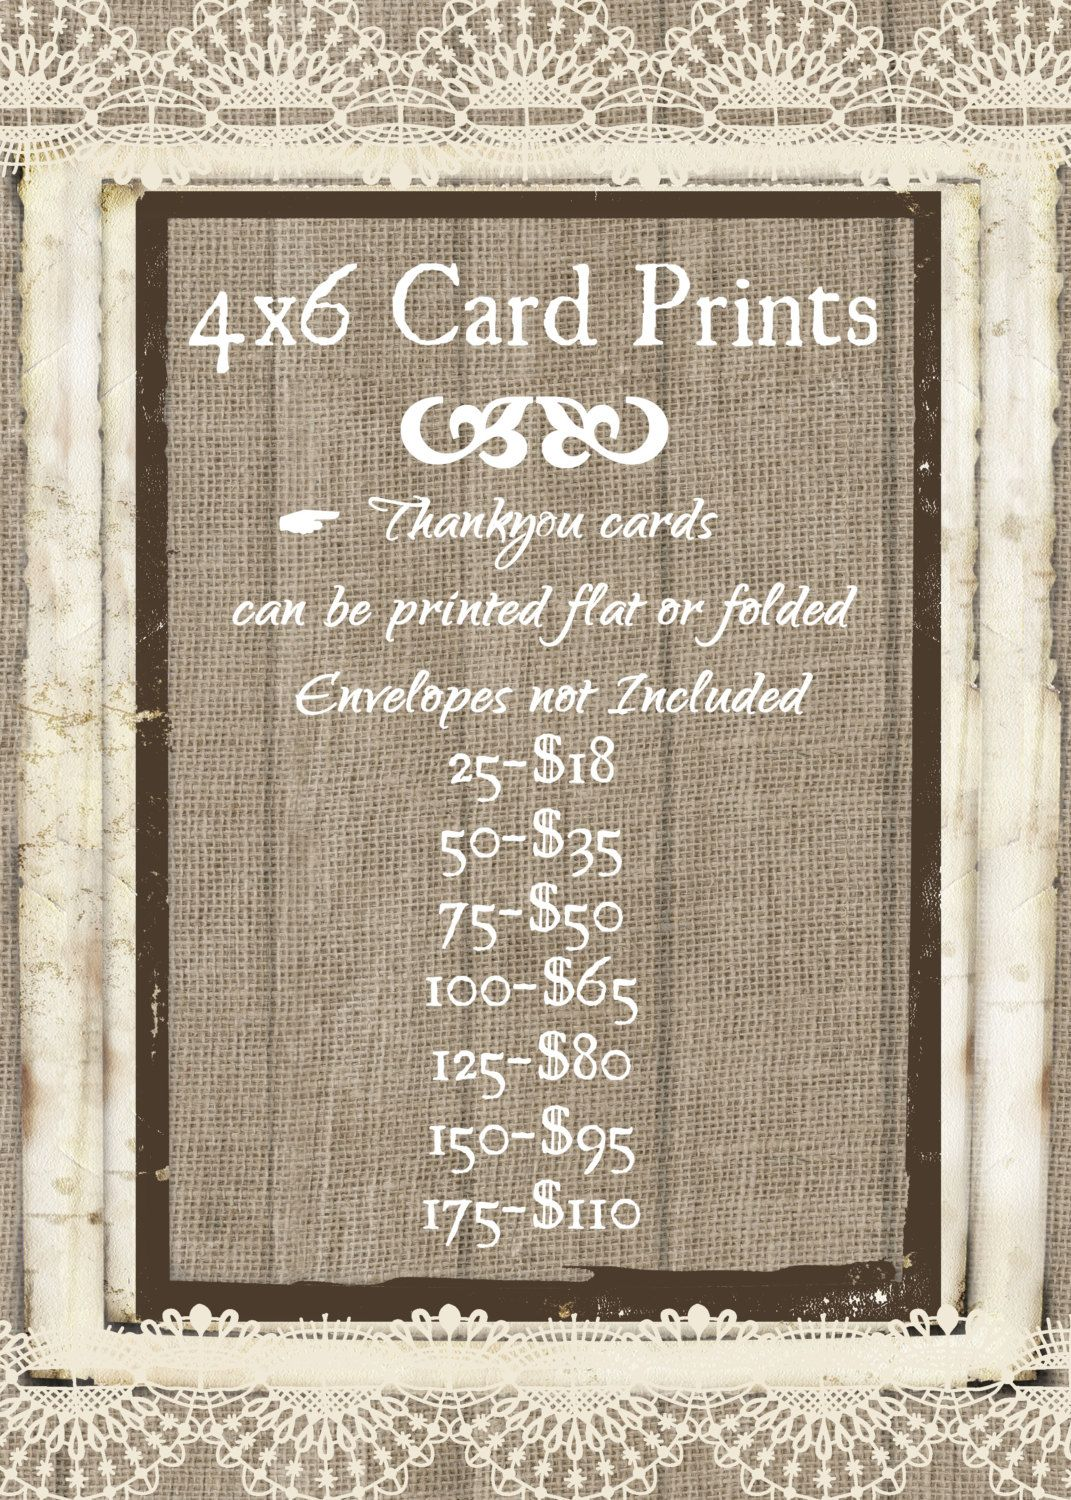 4x6 Thankyou Cards Printing Prices Thank You Cards Card Stock